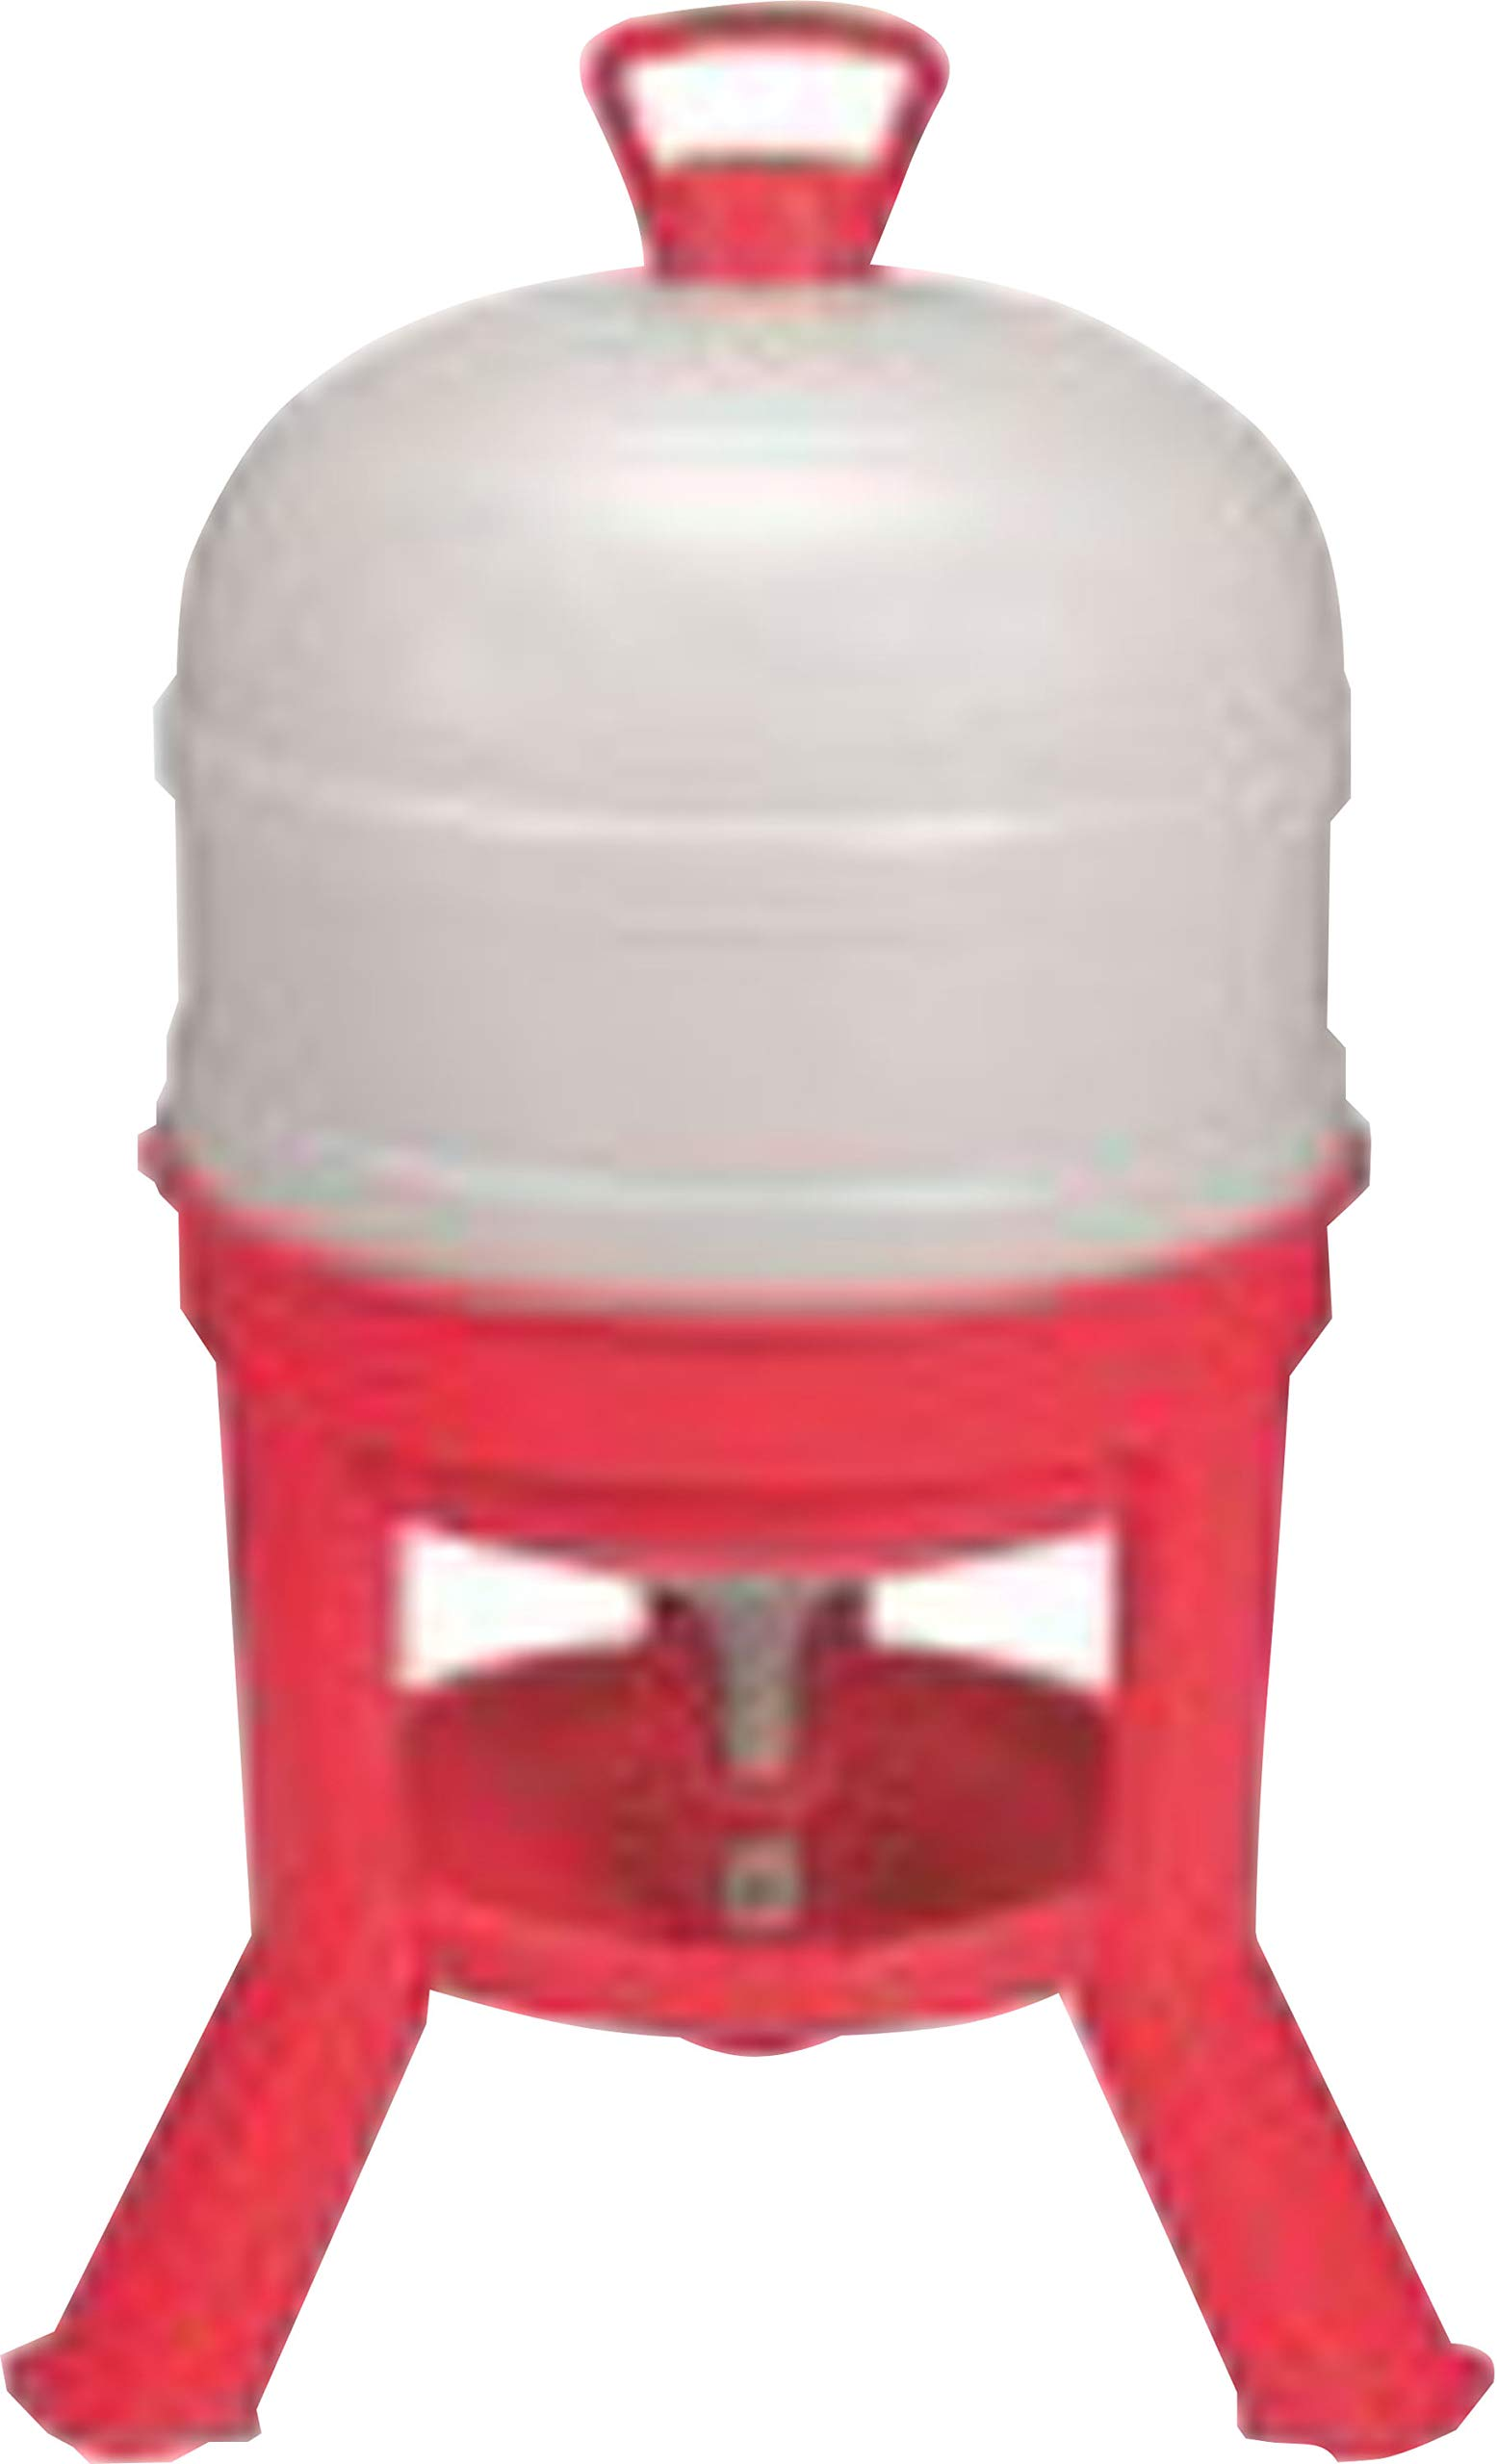 Miller CO DOMEWTR8 Plastic 8 Gallon Poultry Dome Waterer by Miller